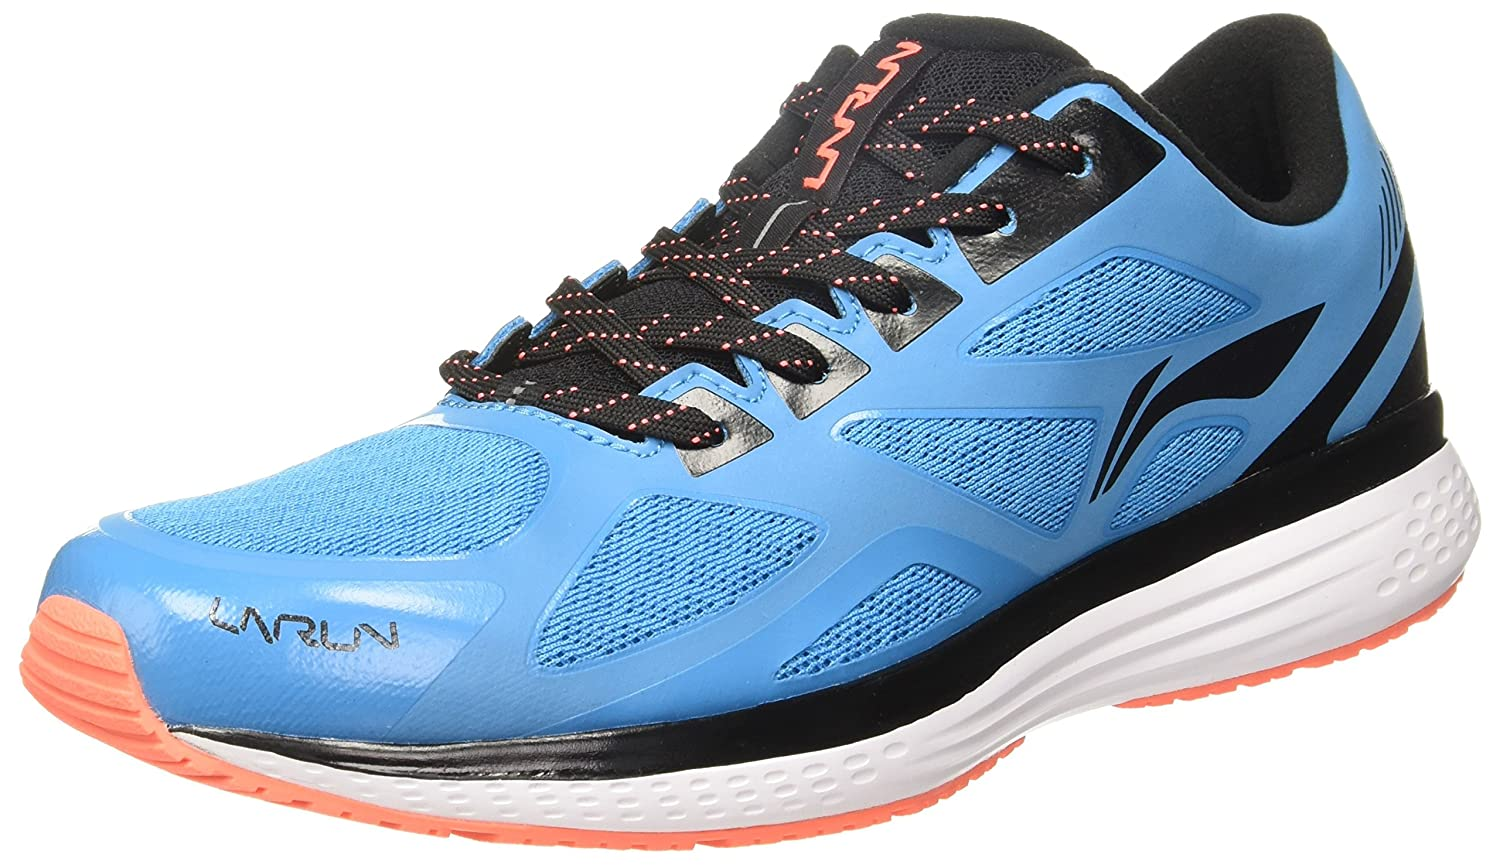 ed6315fd2c188 Li-Ning Men's Running Shoes